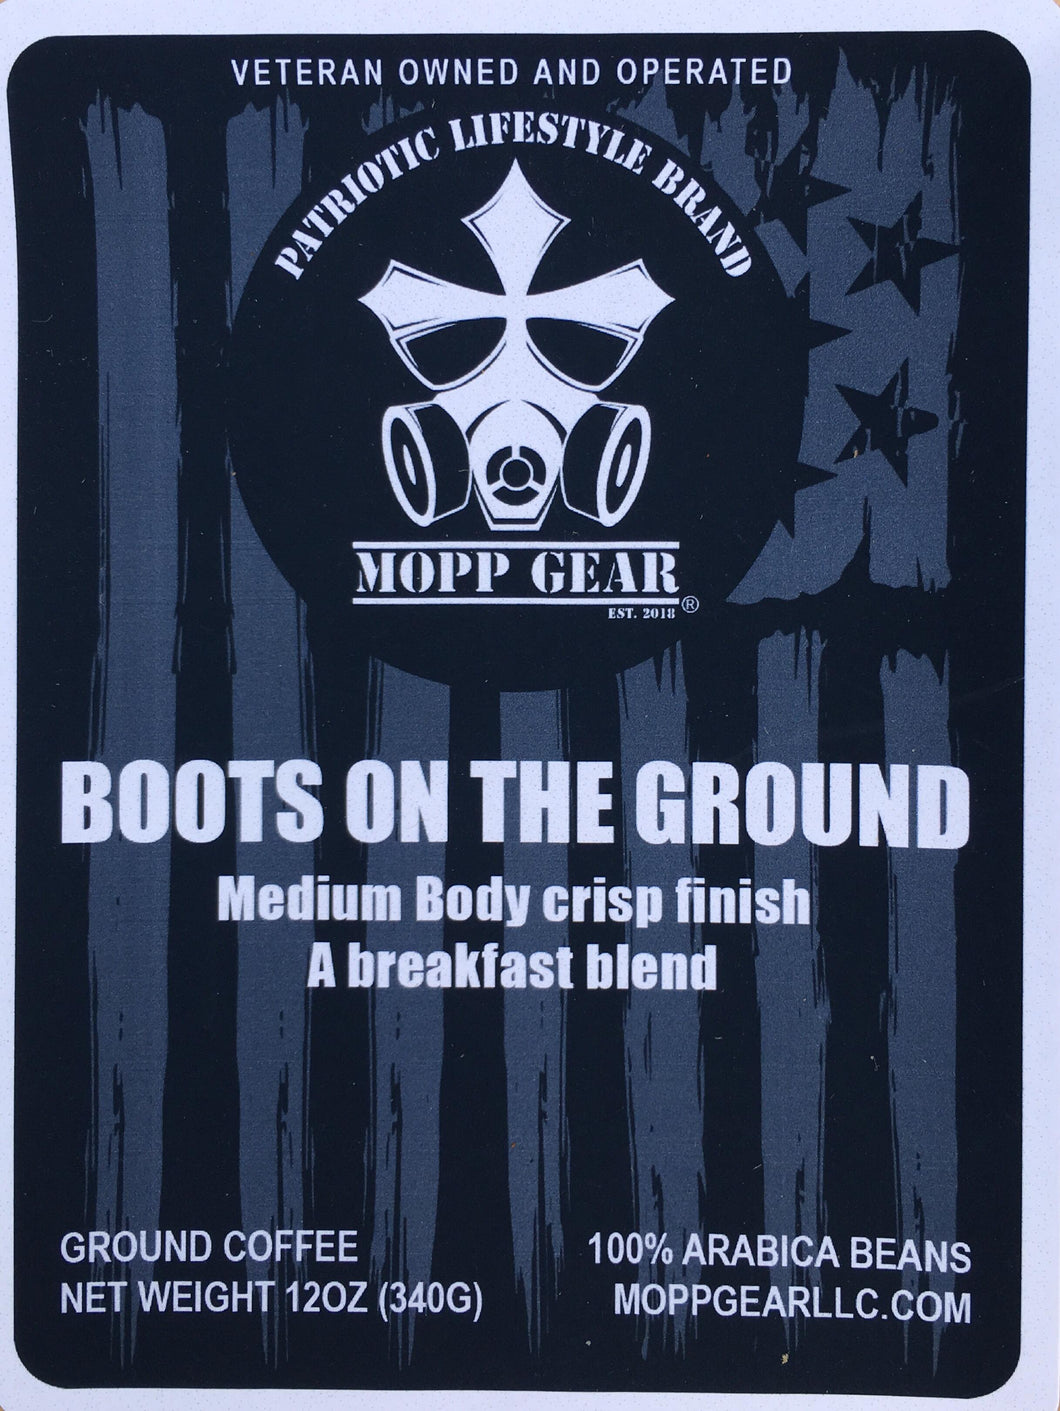 Boots on the Ground Breakfast Blend